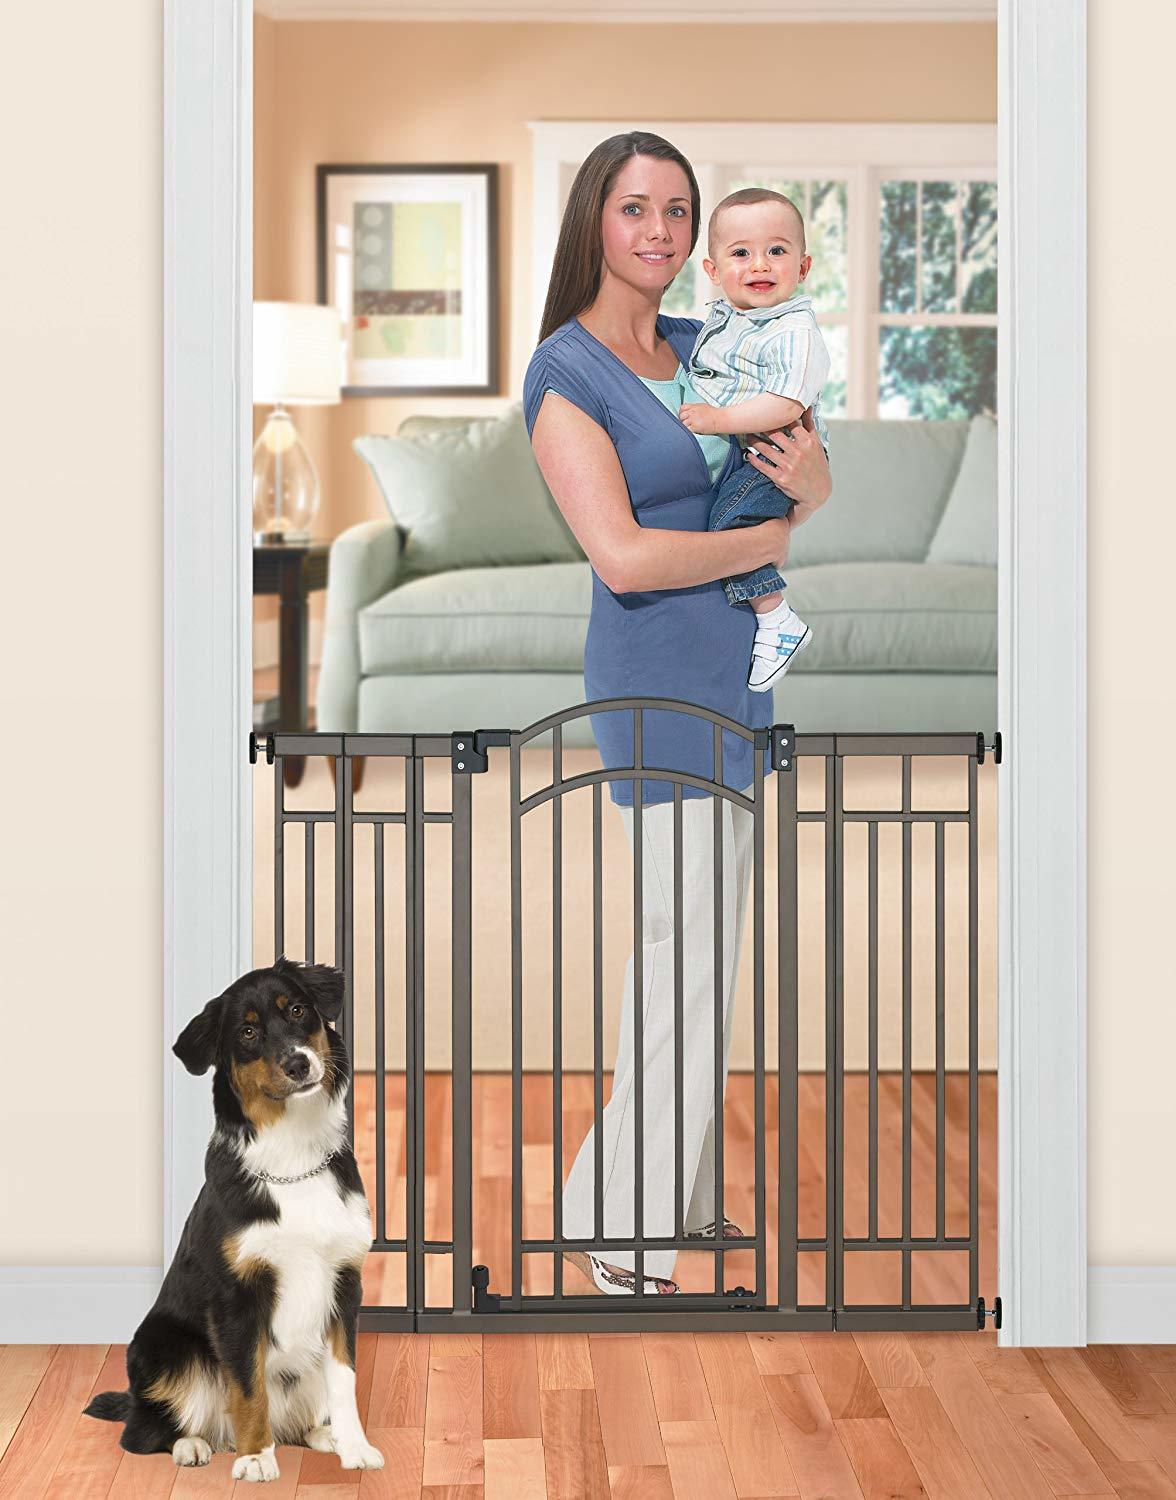 Summer Infant Multi-Use Deco Extra Tall Walk-Thru Baby Gate Review